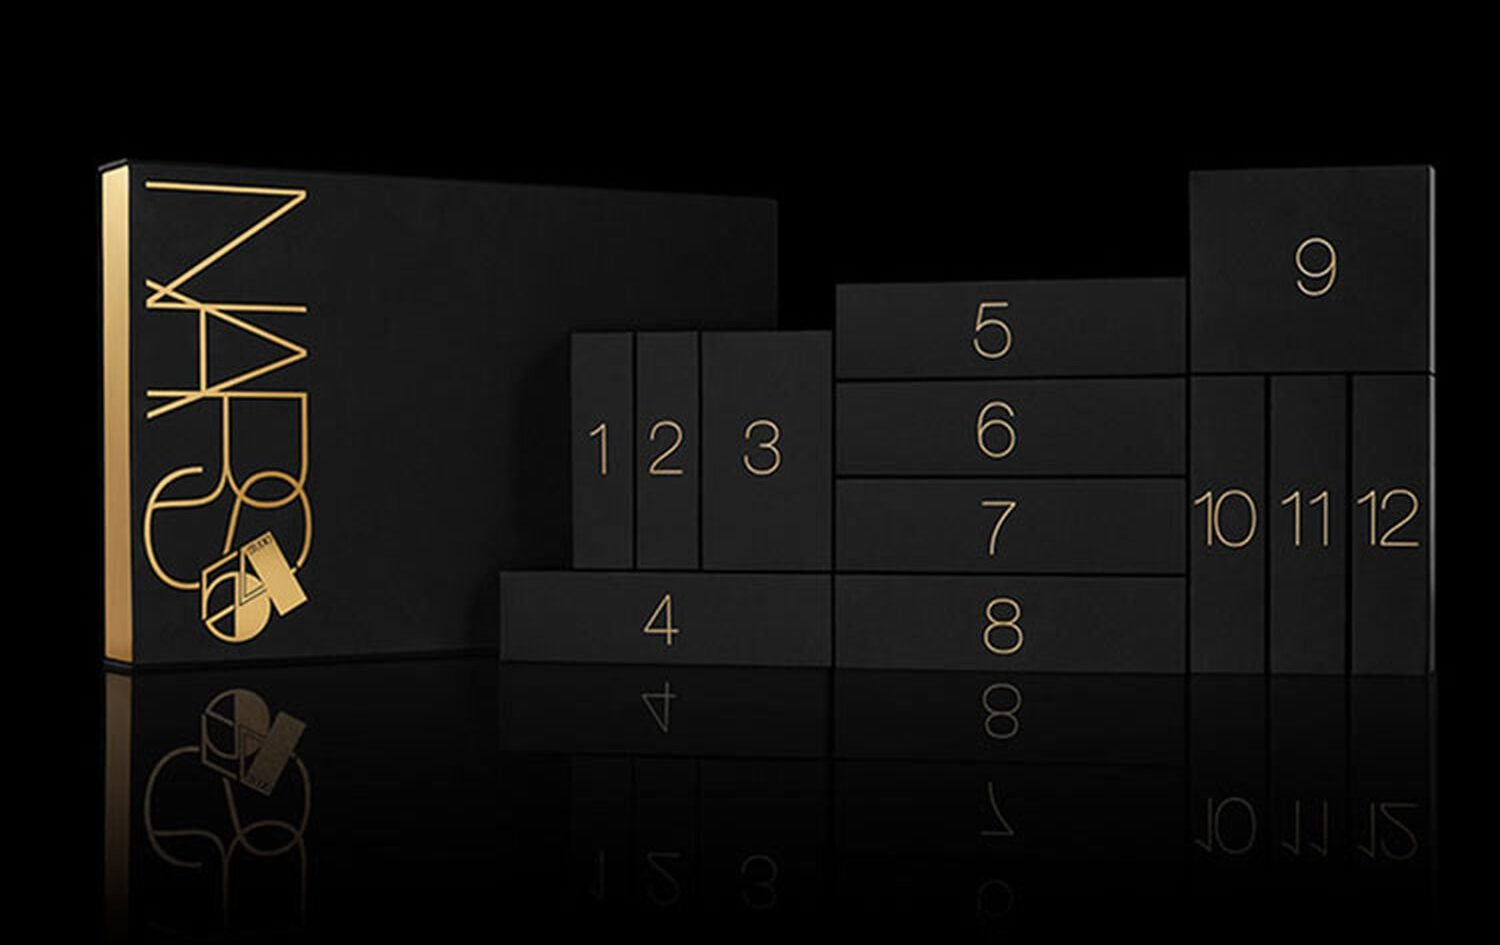 Calendario de adviento nars 2019 - 12 favoritos